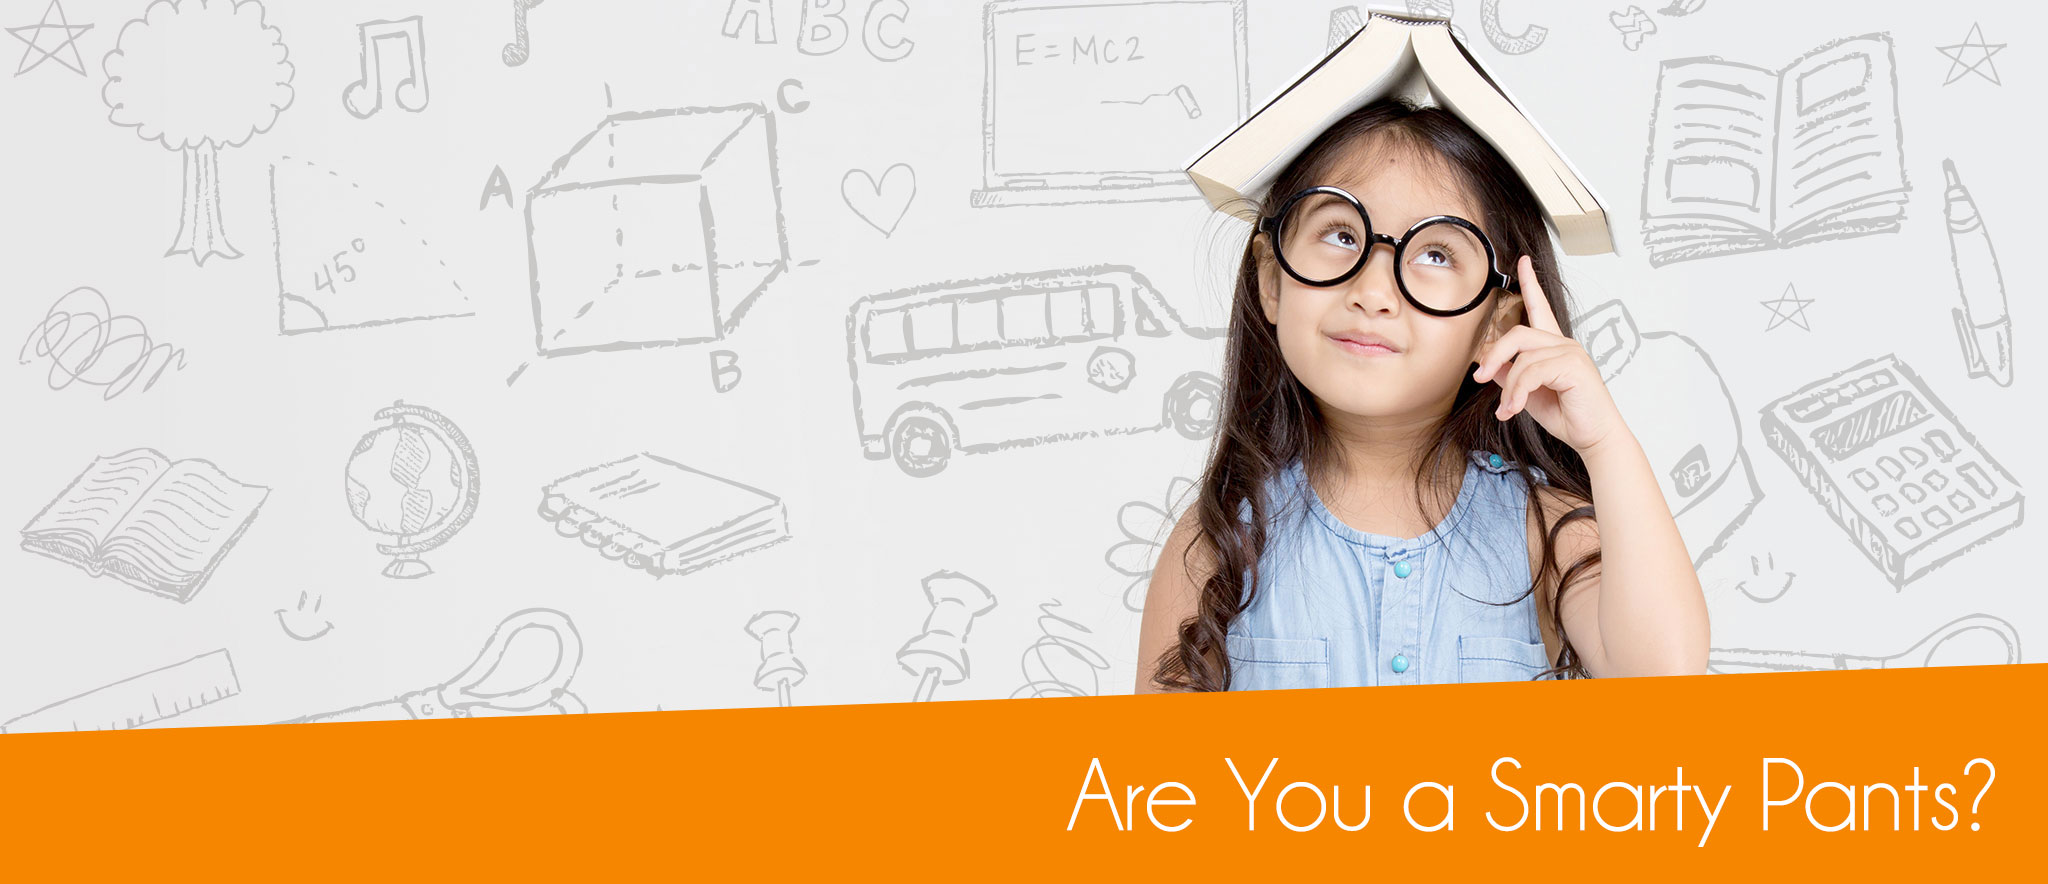 Are You a Smarty Pants?